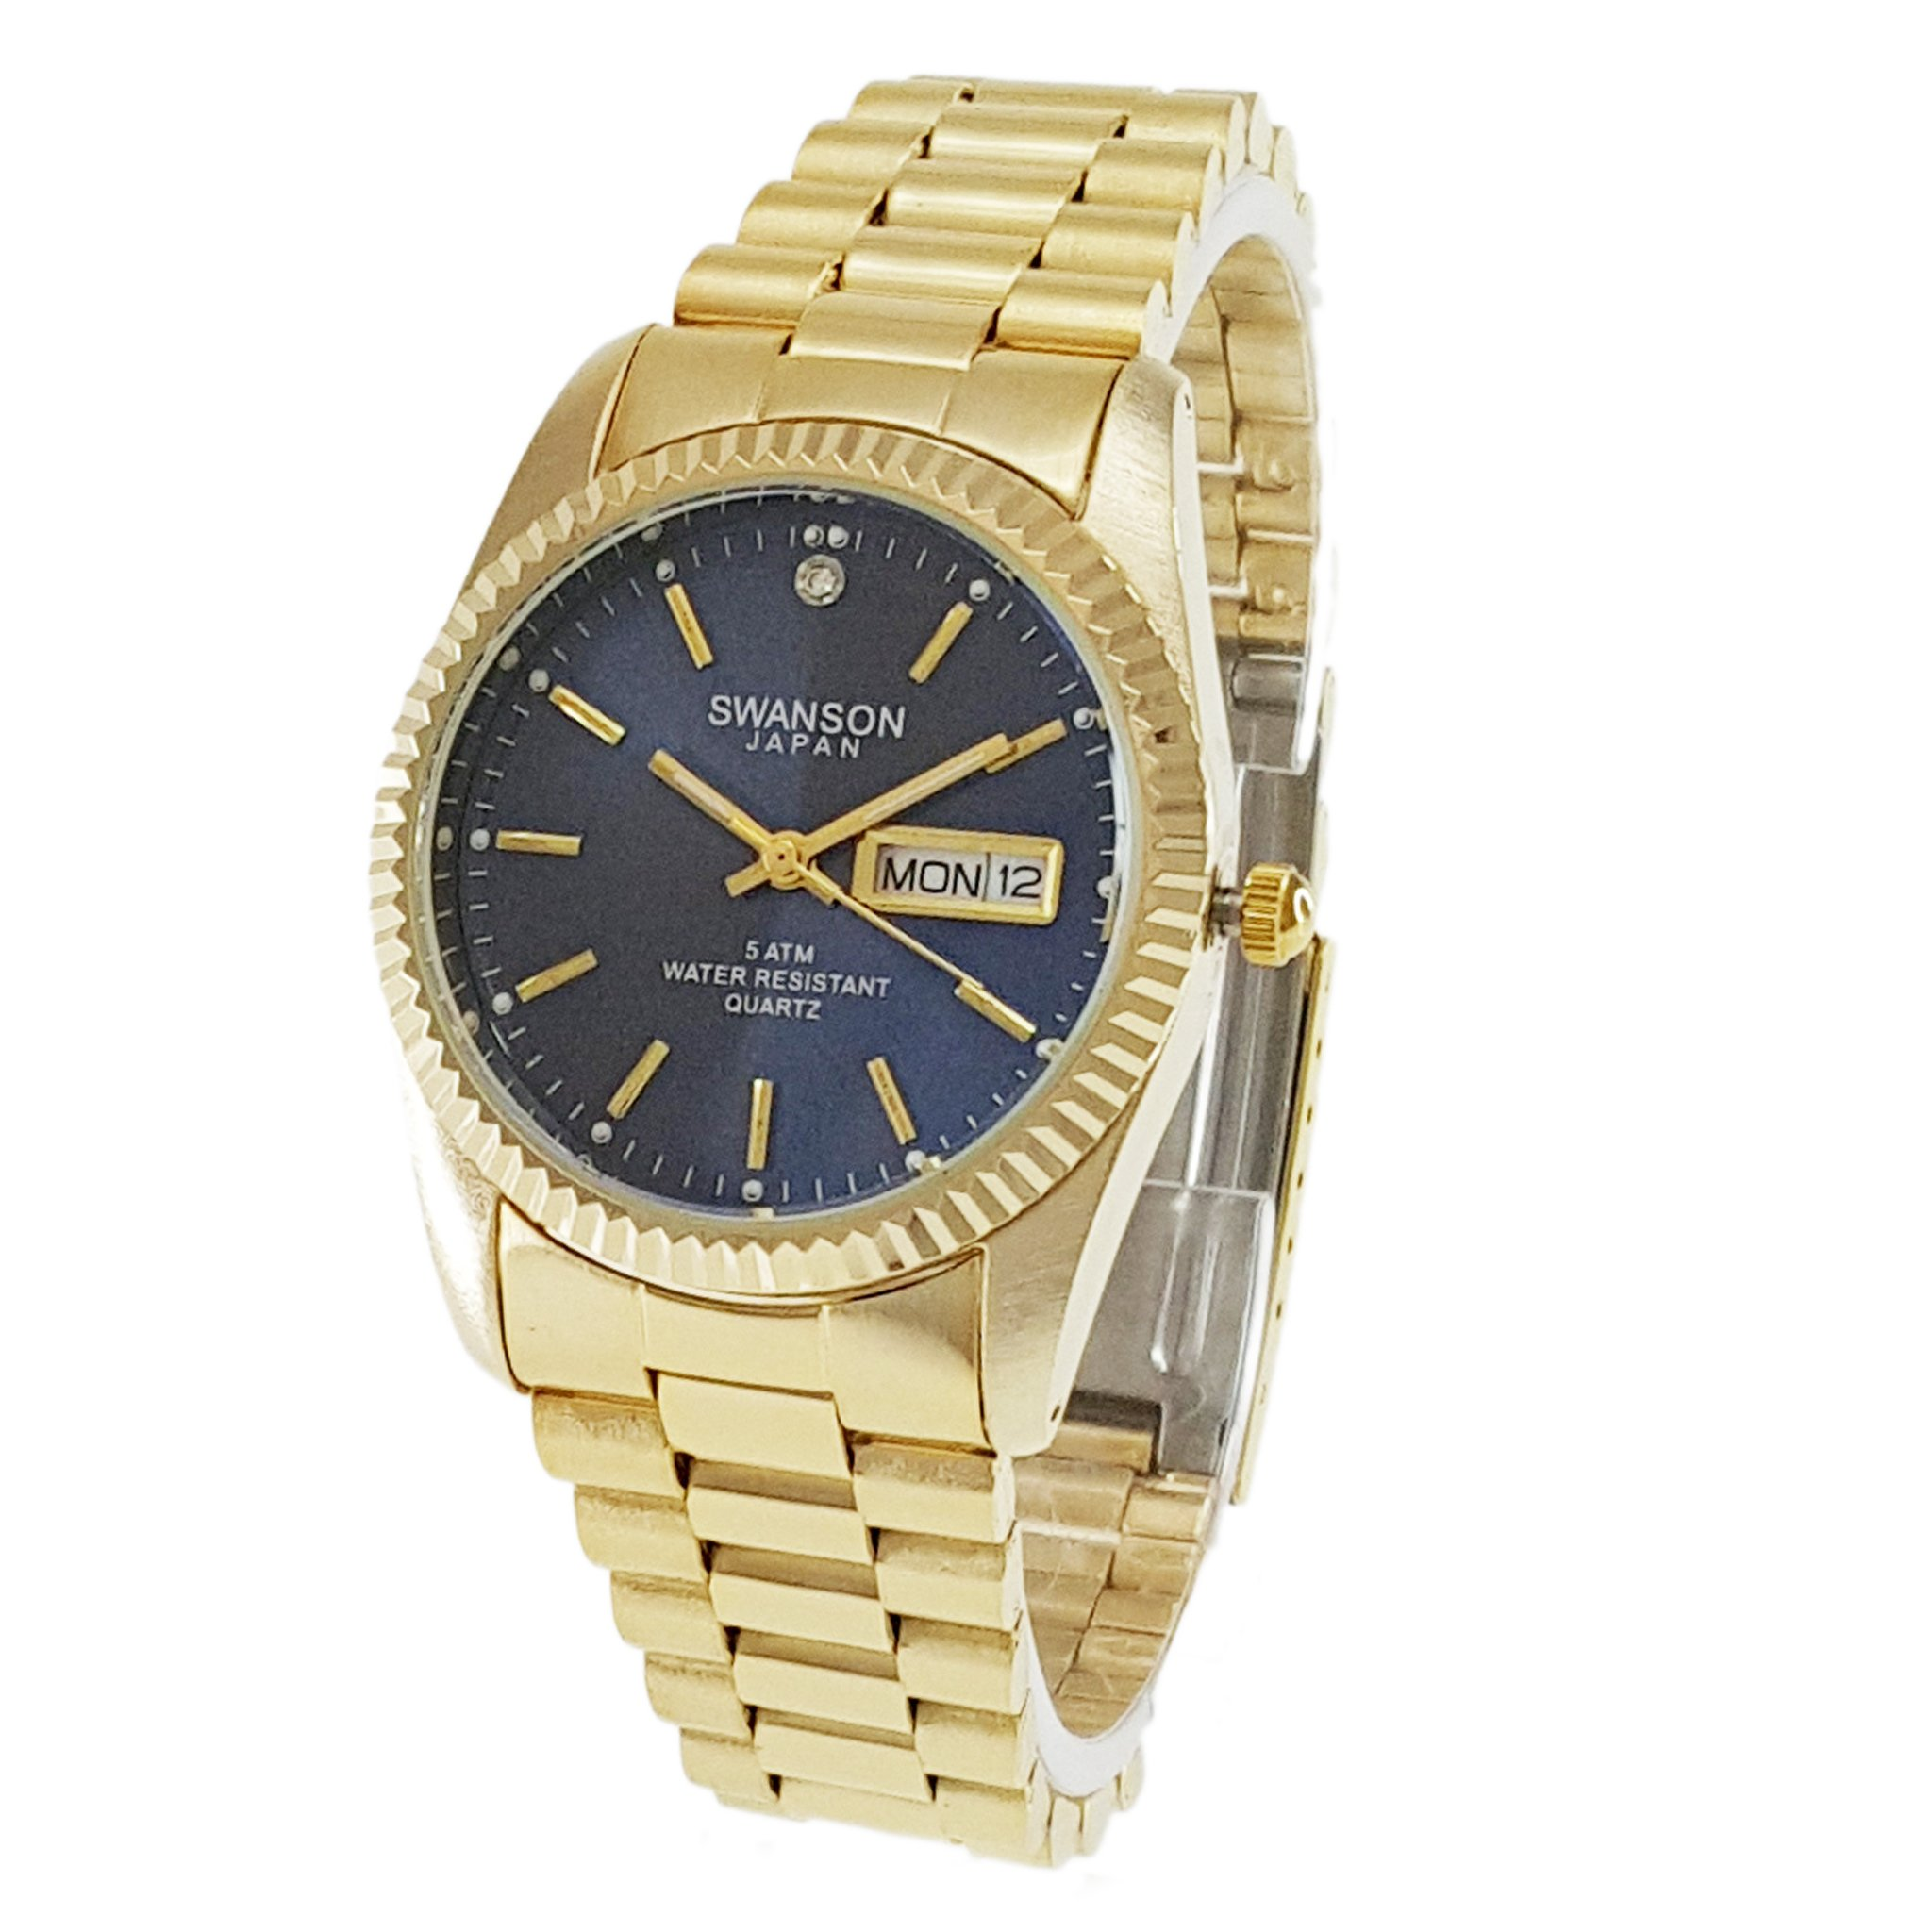 Swanson Men's Gold Day-Date Watch Navy Blue Dial with Travel Case